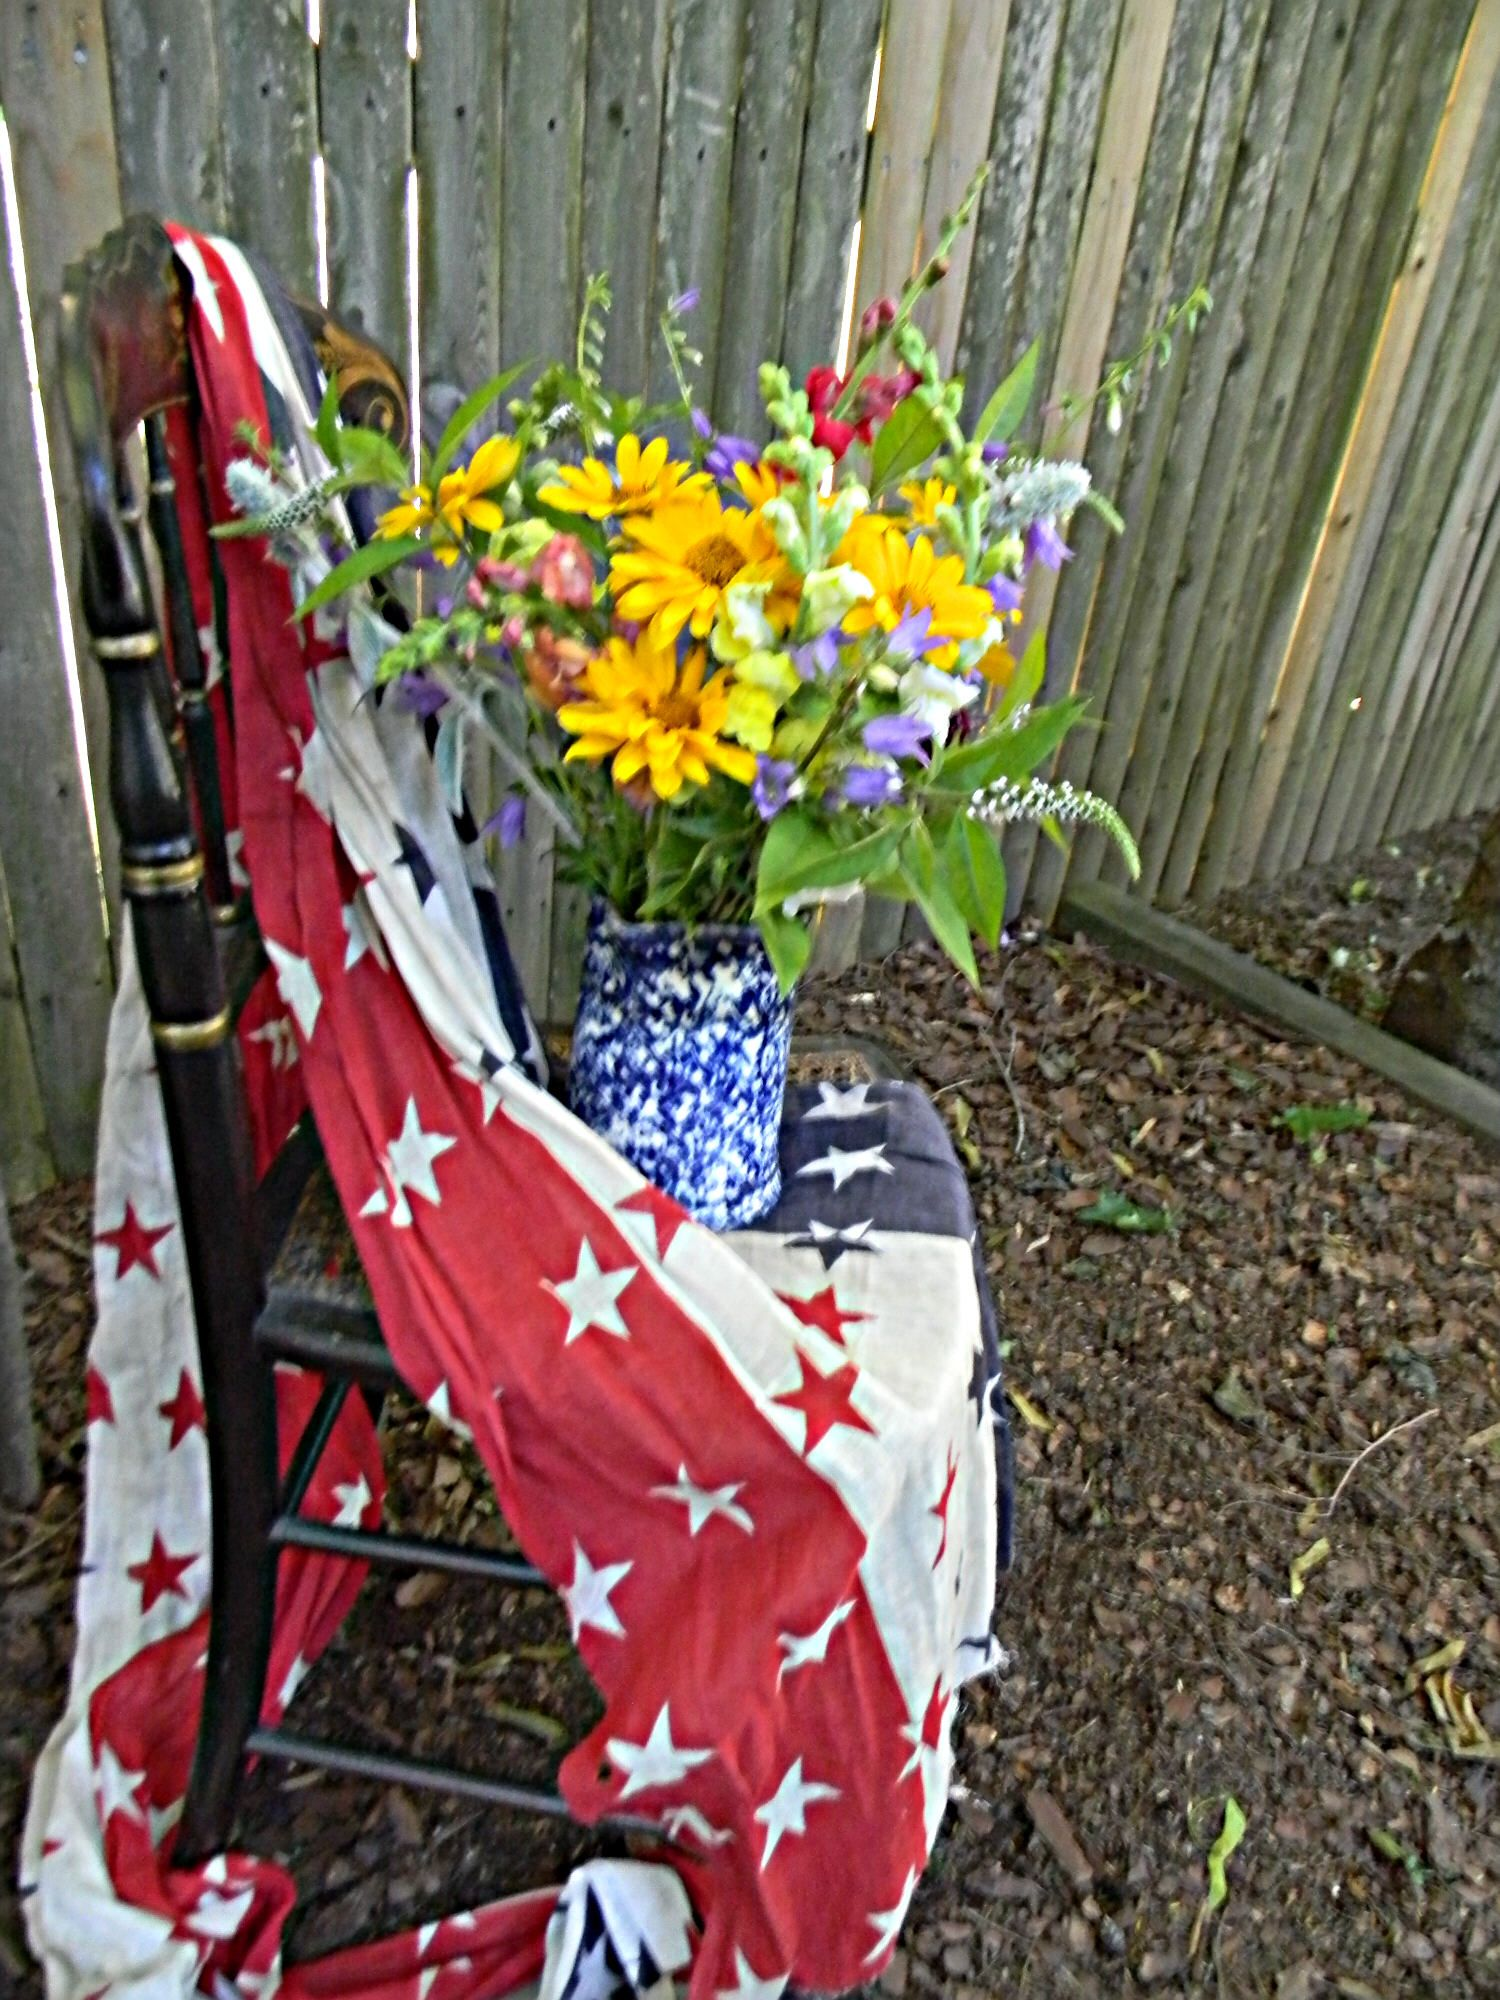 Summer bouquet arranged in a blue spongeware pitcher.  We added red, white and blue bunting and displayed them on an antique lady's chair.